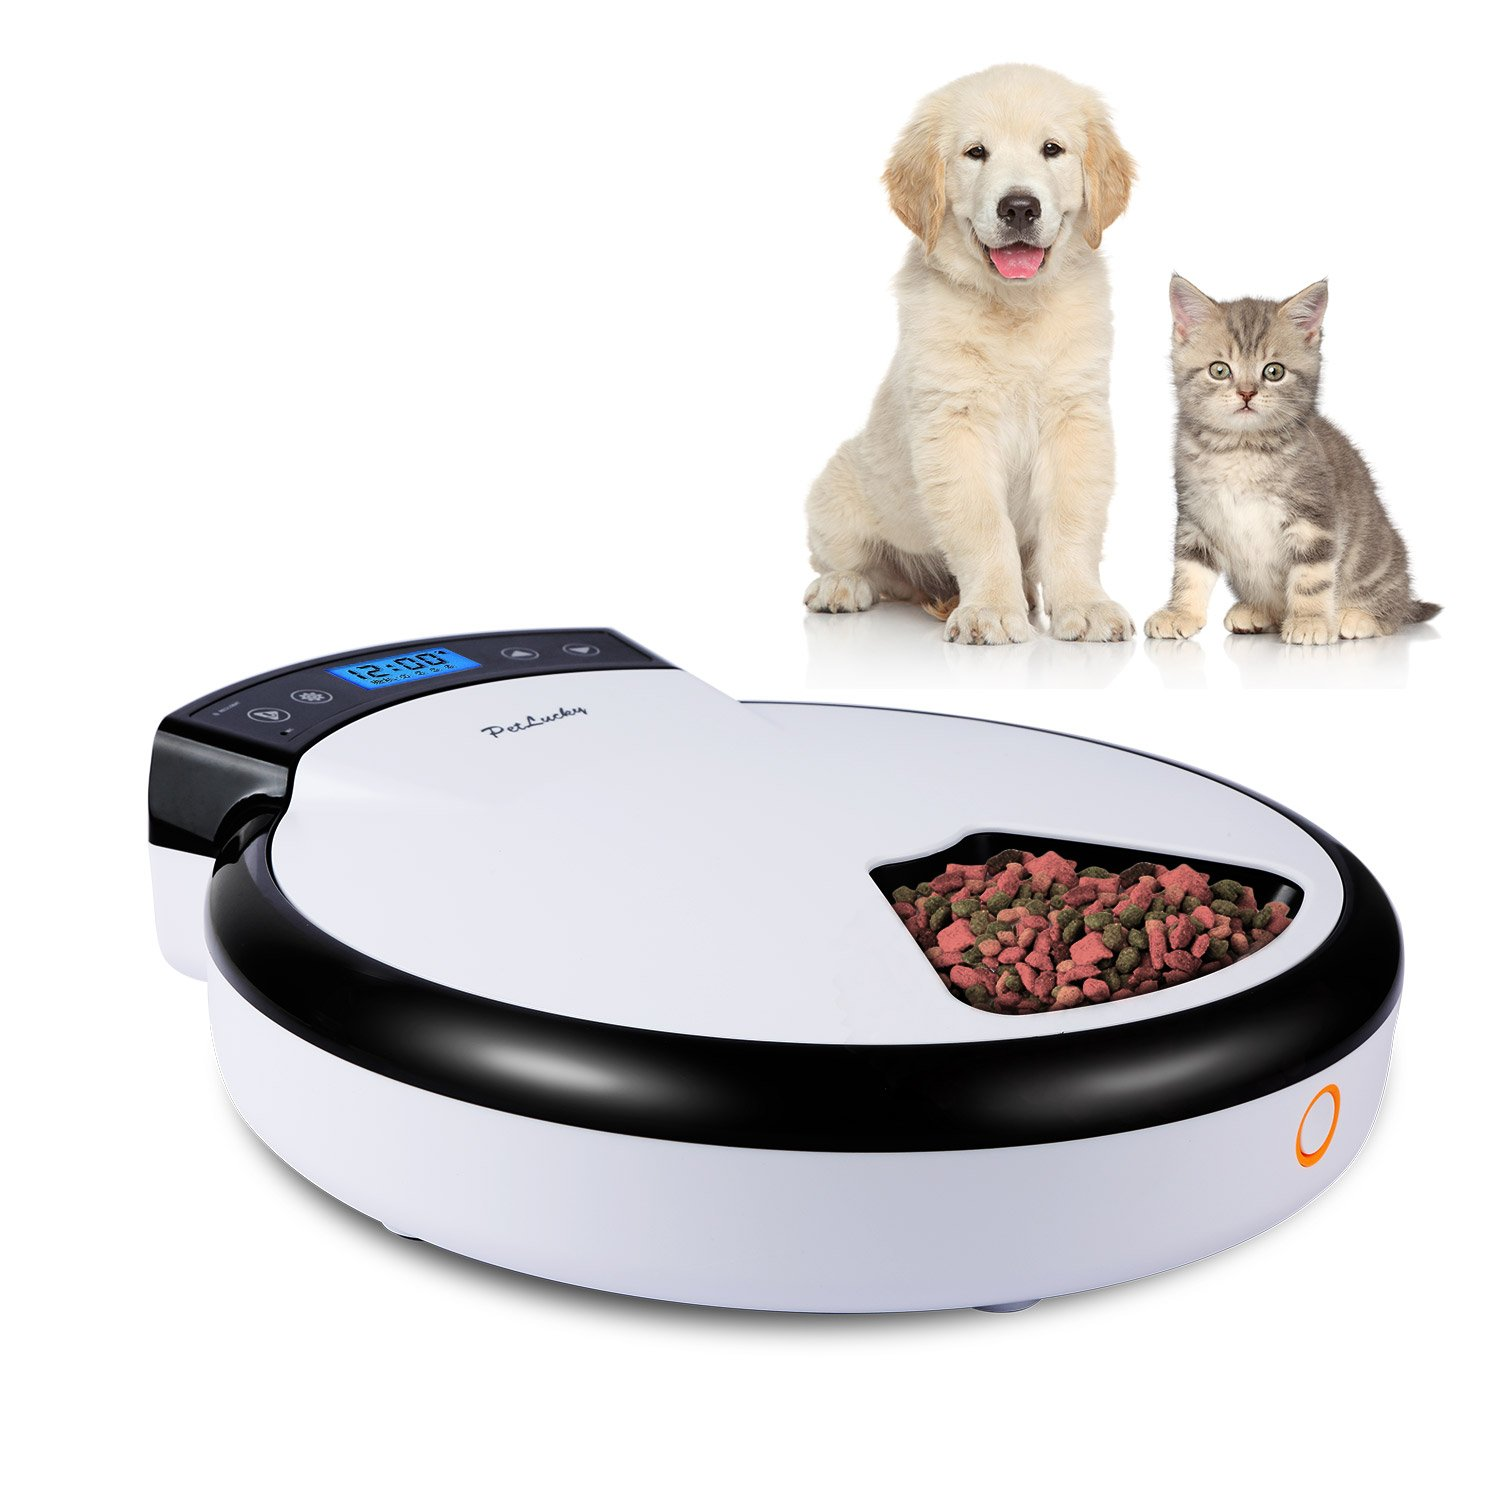 Petlucky Automatic Pet Feeder for Dogs and Cats with Voice Reminding,5-Meal,Dry &Wet Food,LCD Display,Healthier, 240ml x 5